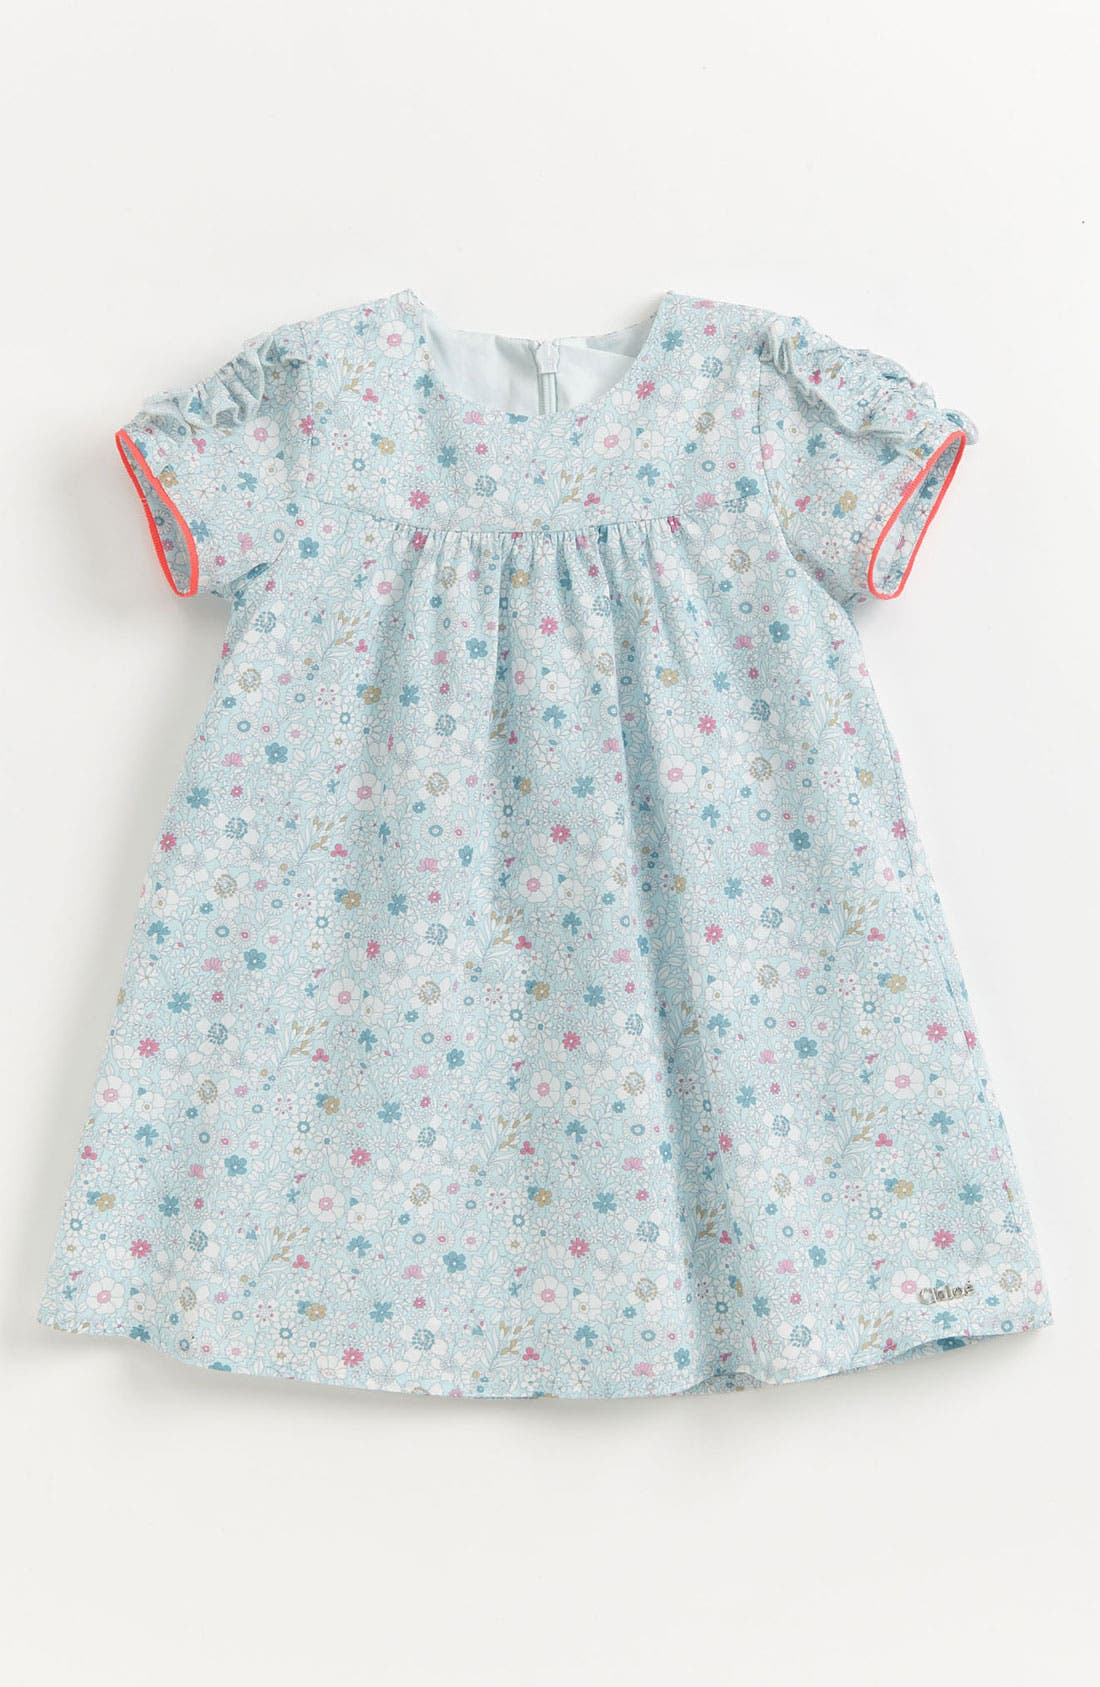 Alternate Image 1 Selected - Chloé 'Liberty Print' Floral Dress (Toddler)